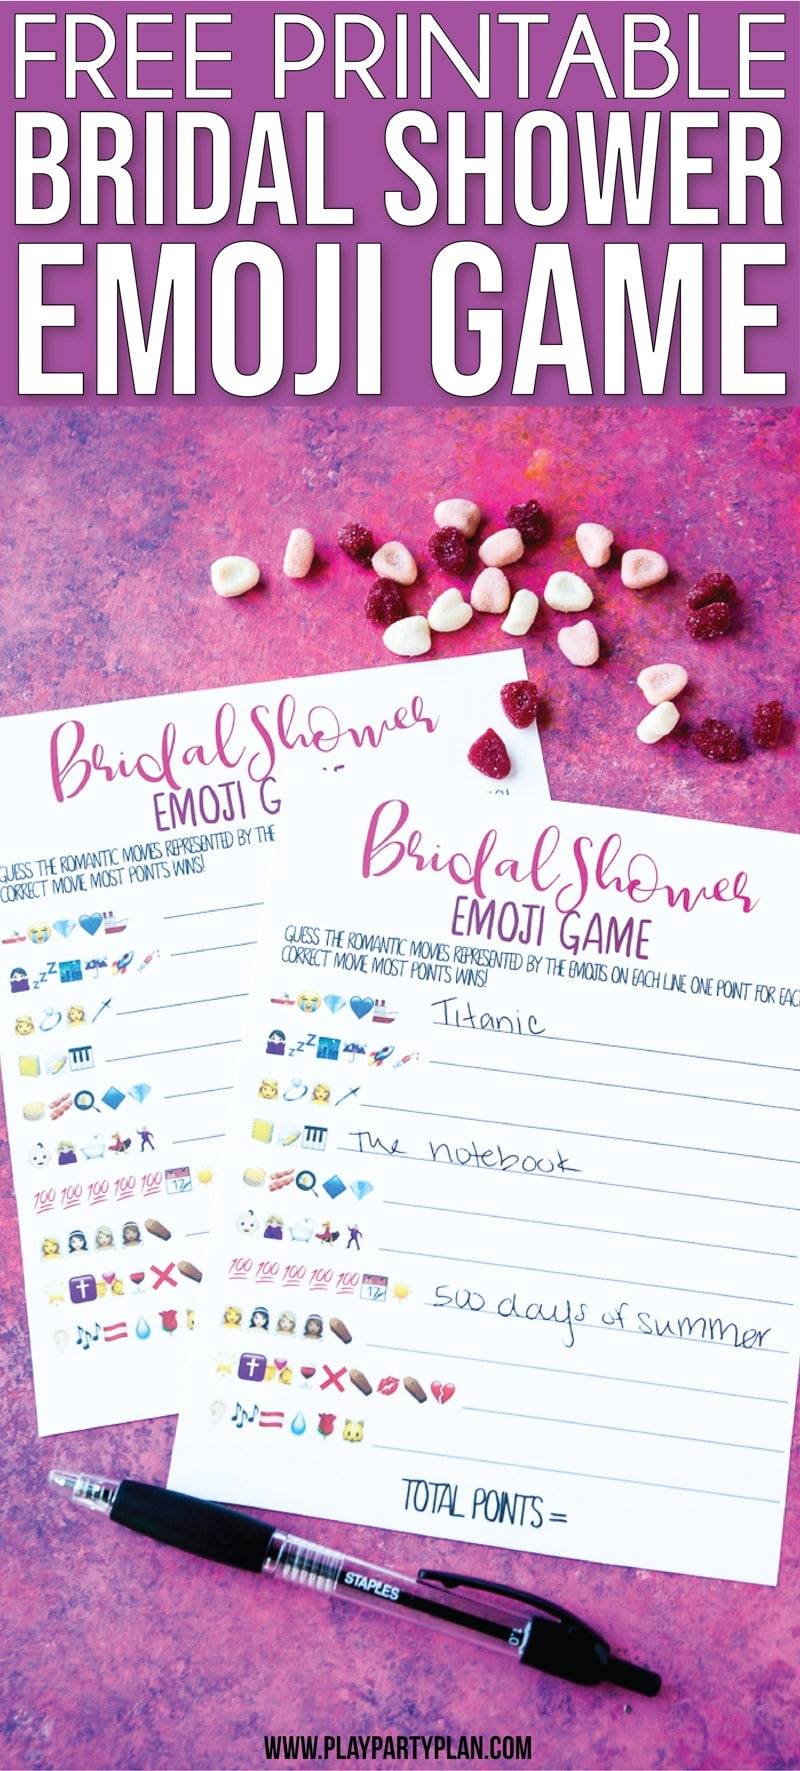 Free Printable Bridal Shower Name The Emoji Game - Free Printable Household Shower Games